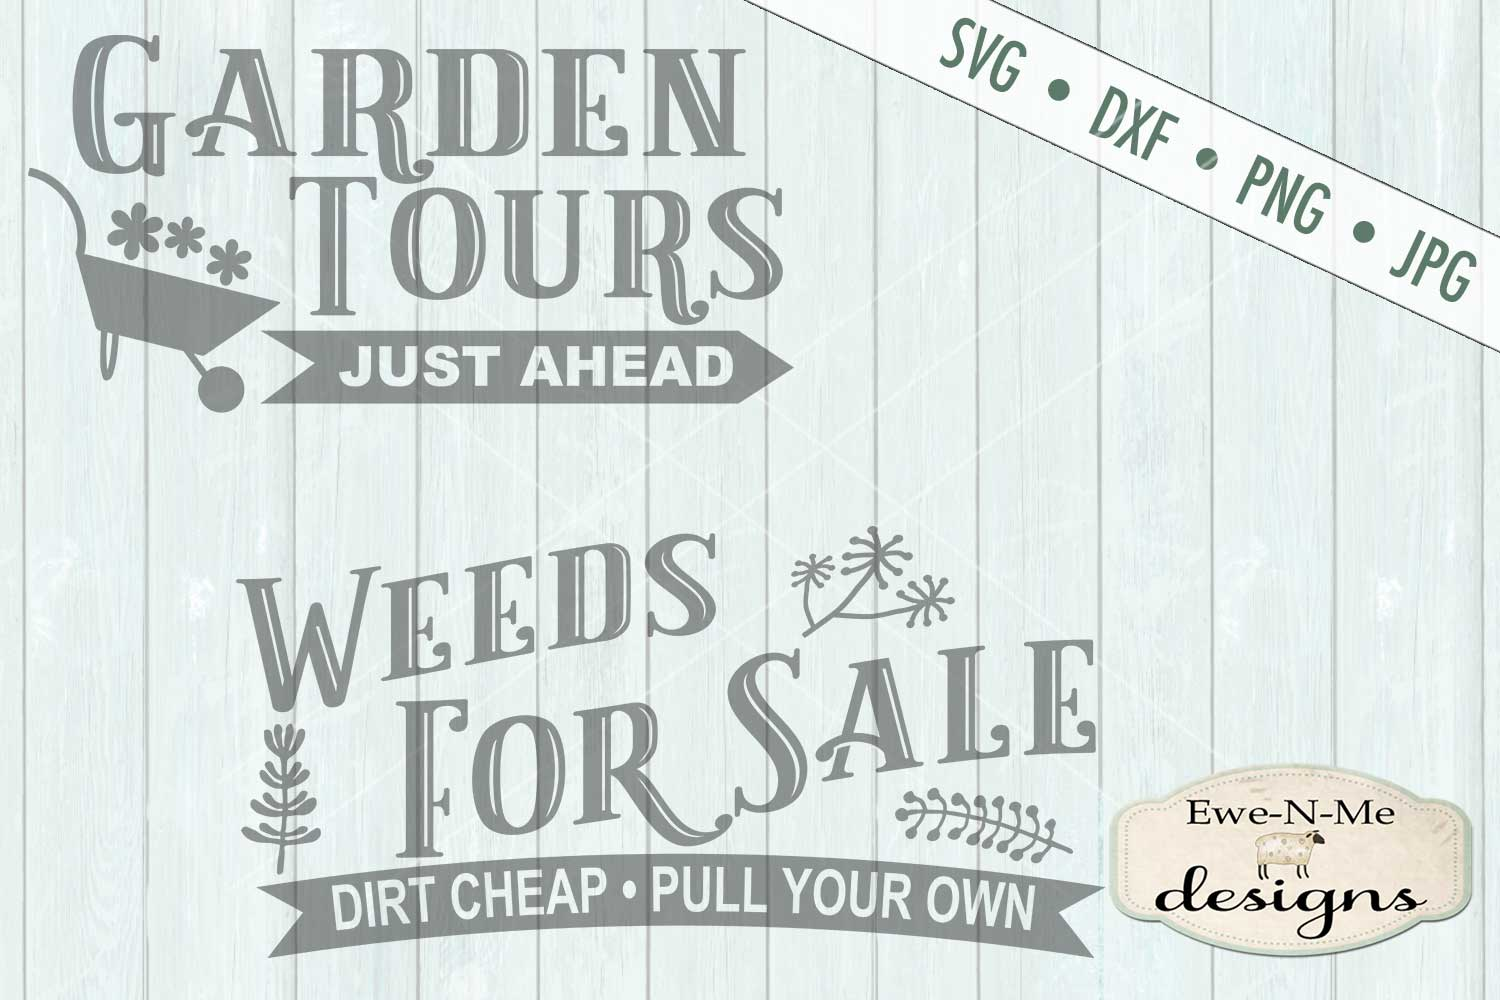 Garden Tours Weeds For Sale SVG DXF Files example image 2